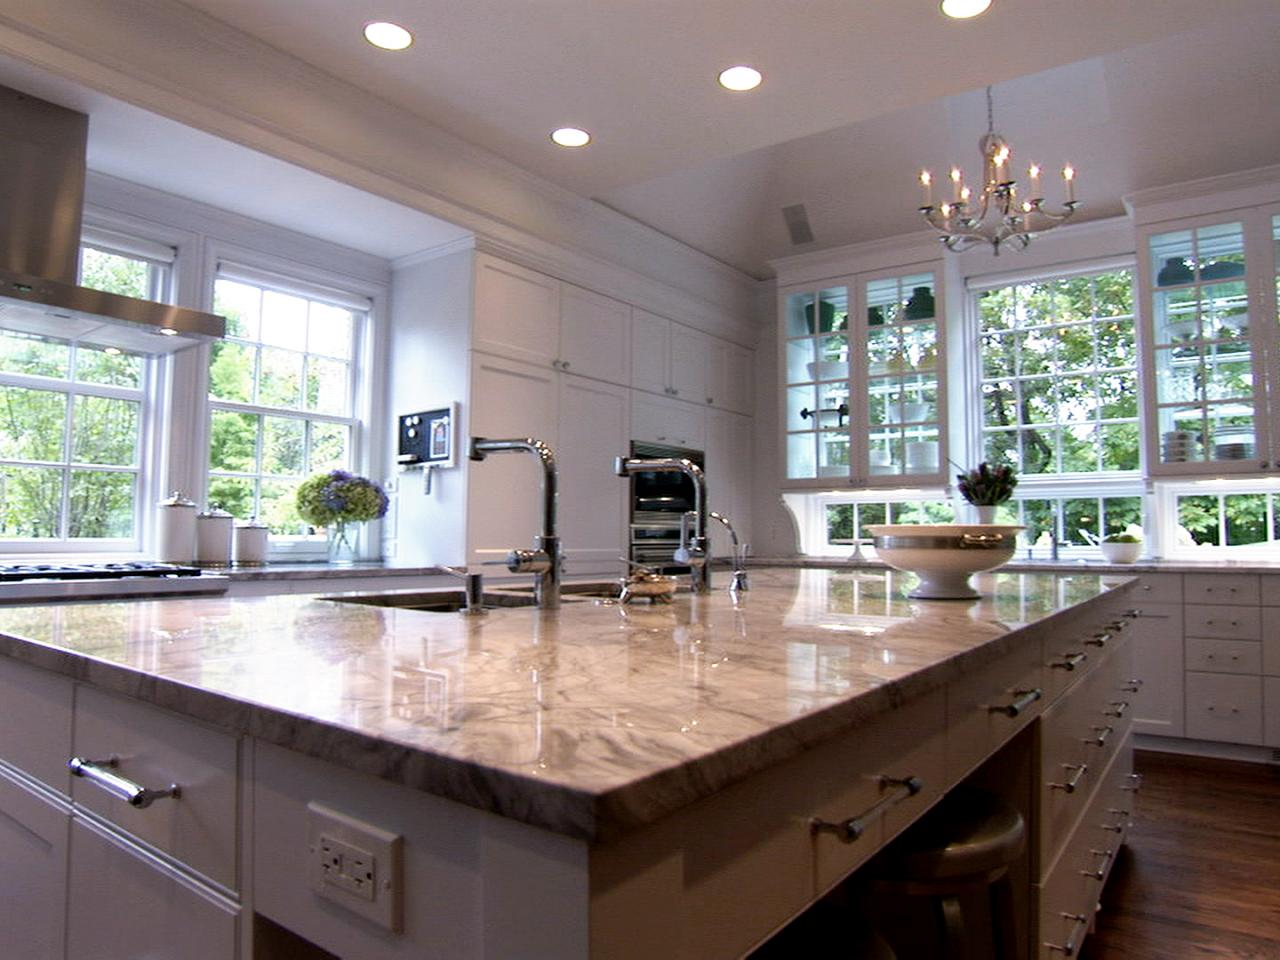 Peninsula kitchen design pictures ideas tips from hgtv for Hgtv kitchens